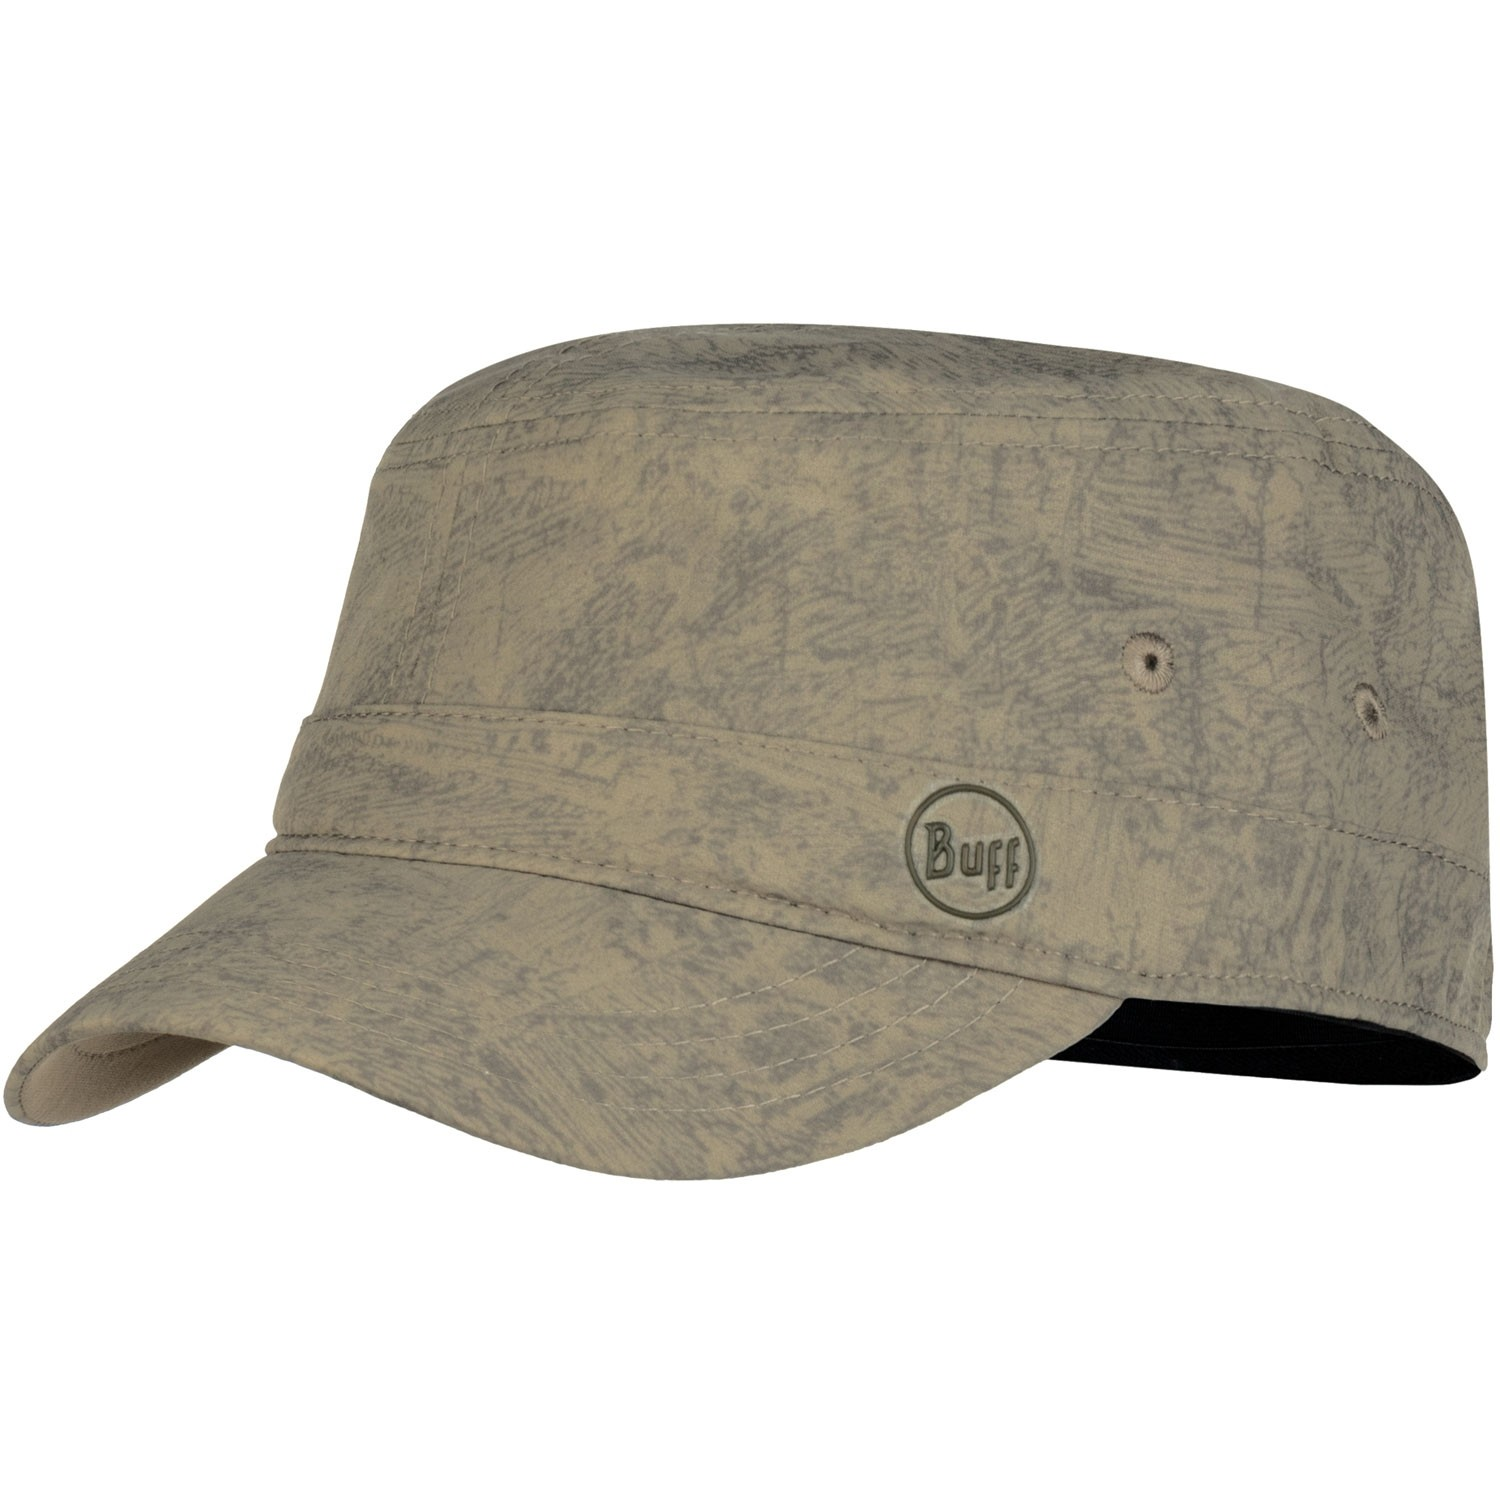 Buff Military Cap - Zinc Taupe Brown